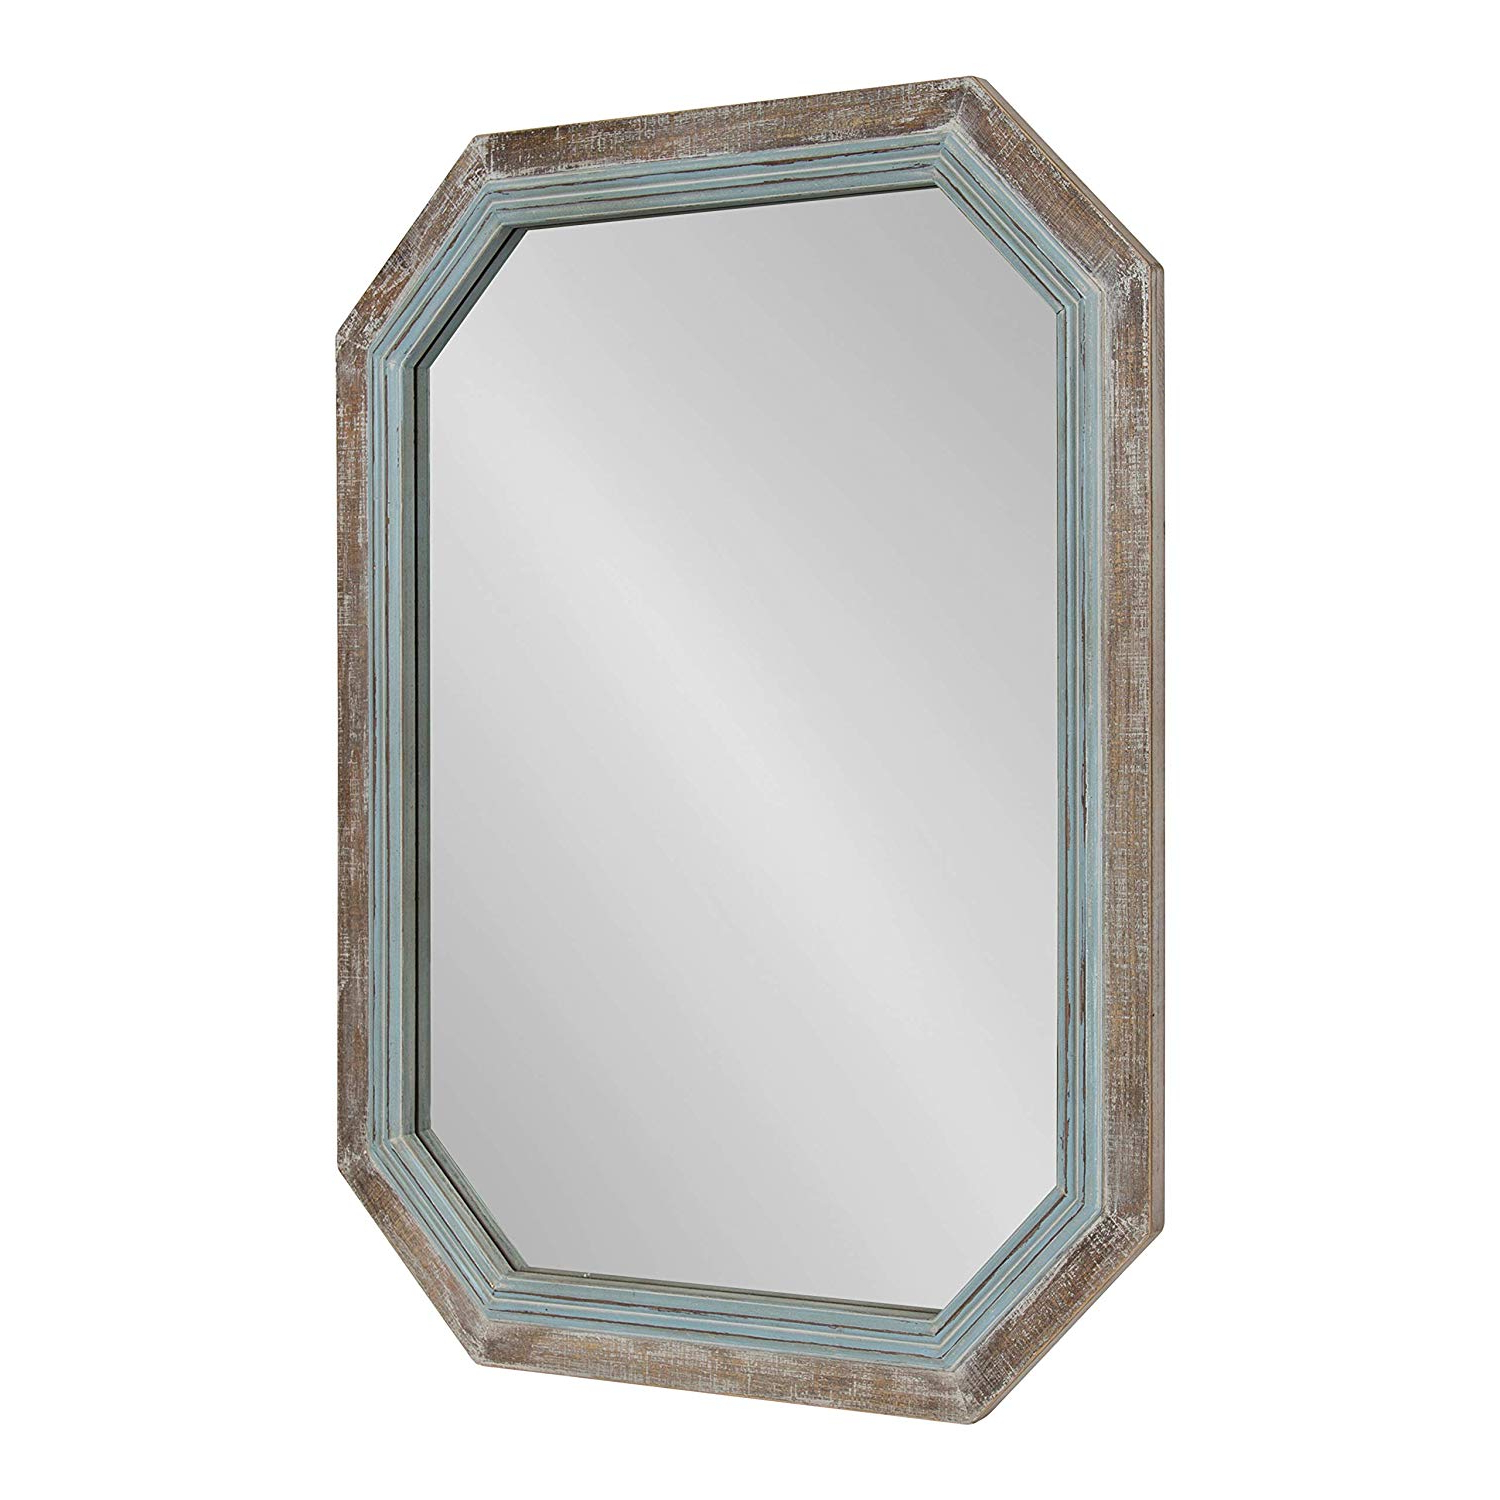 Most Recently Released Coastal Wall Mirrors Regarding Kate And Laurel Palmer Large Rustic Farmhouse Wooden Octagon Wall Mirror, Distressed Two Tone Coastal Blue And Natural, 36x (View 12 of 20)